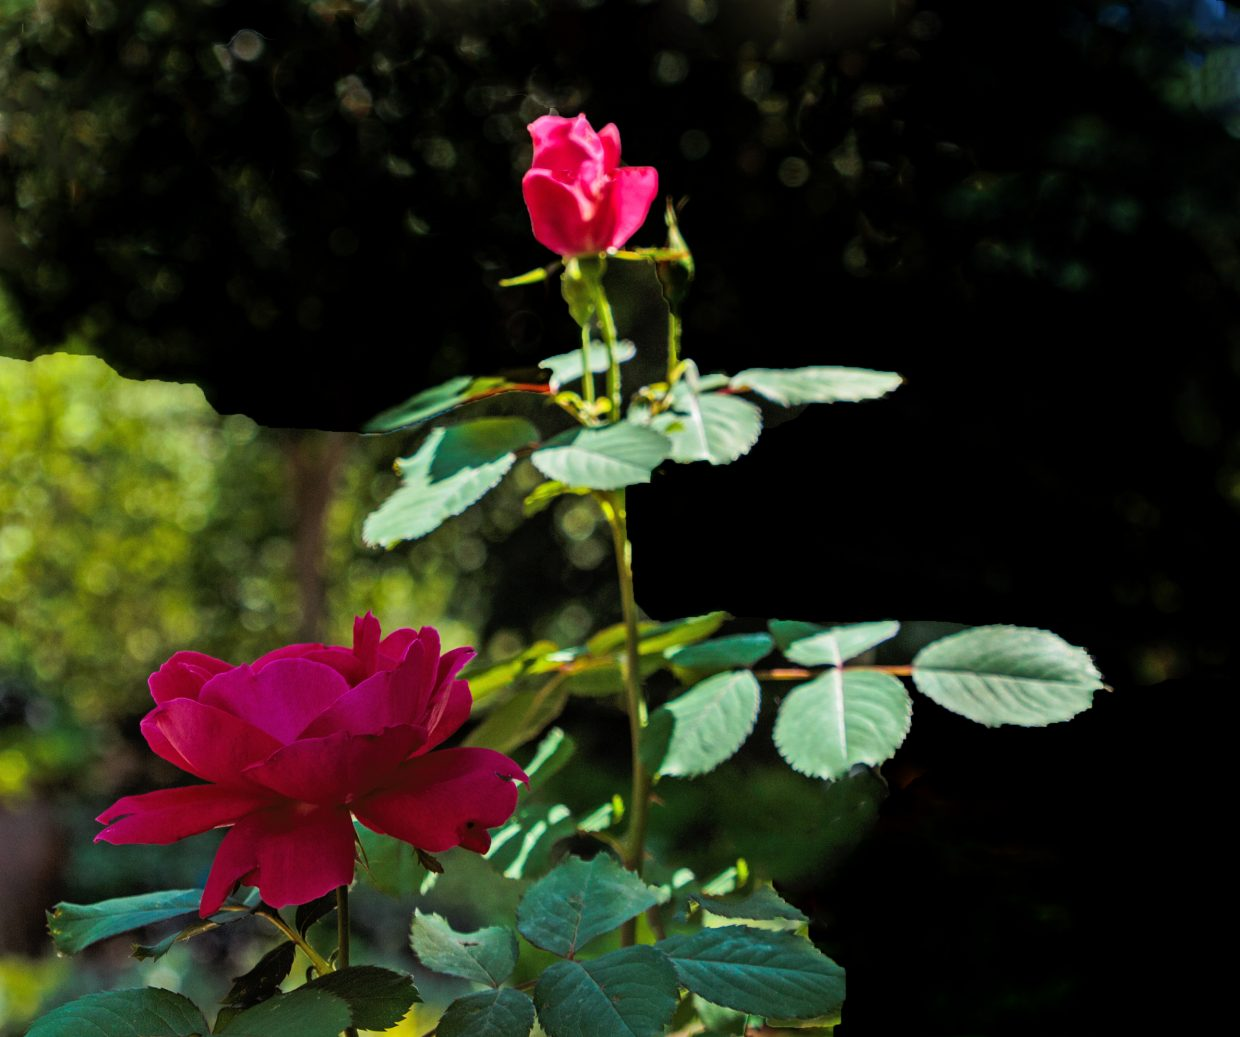 A pair of roses blossom.